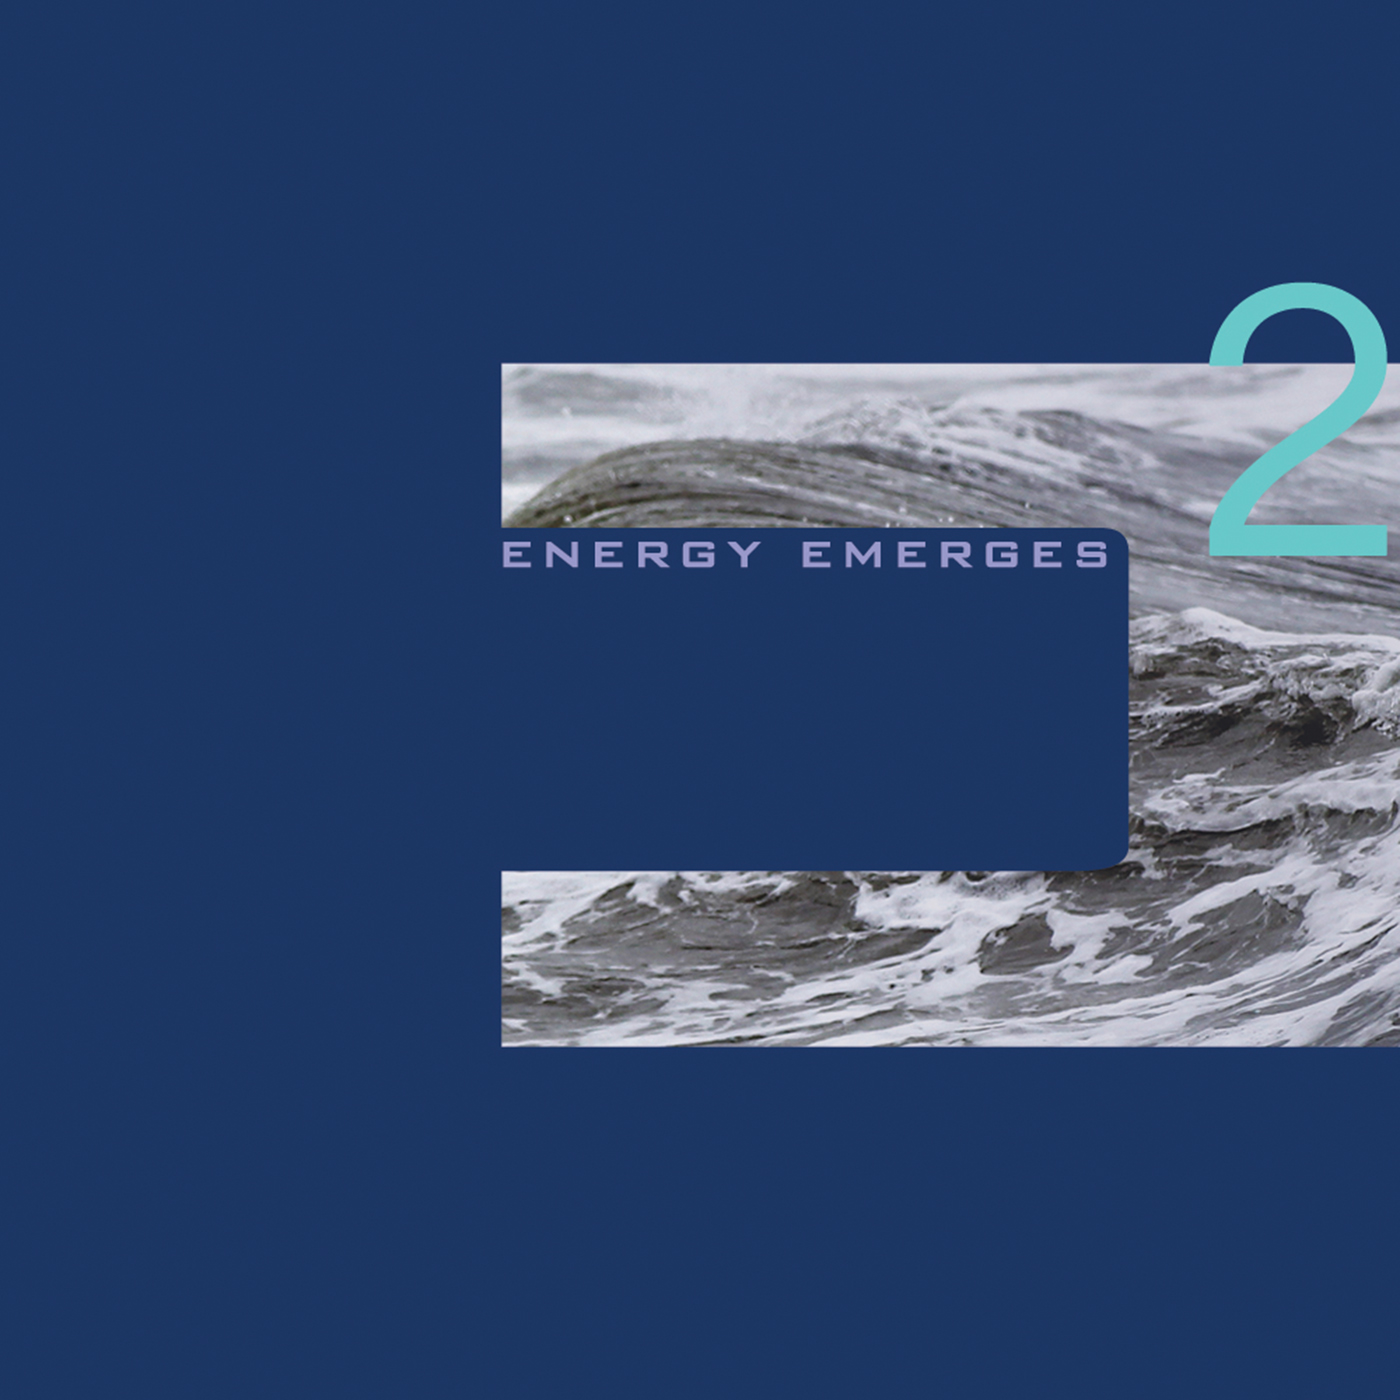 Energy Emerges is available on CD Baby